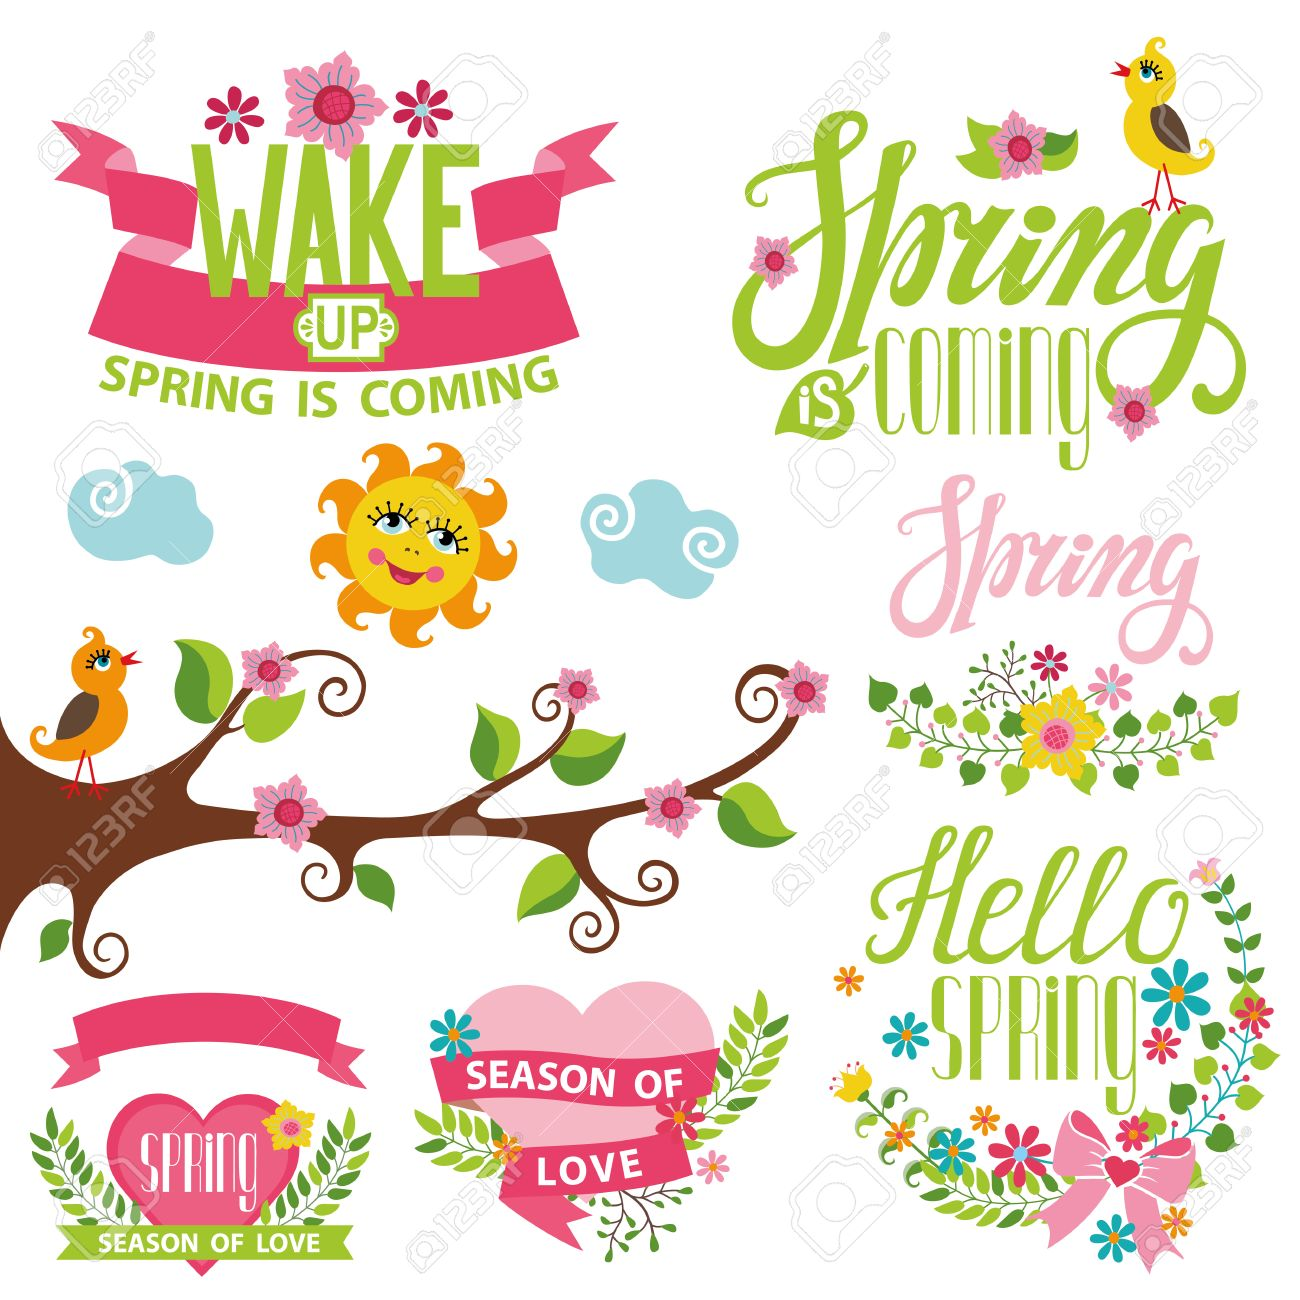 Spring Season Decoration Set Vector Cartoon Elements Bird Flowers